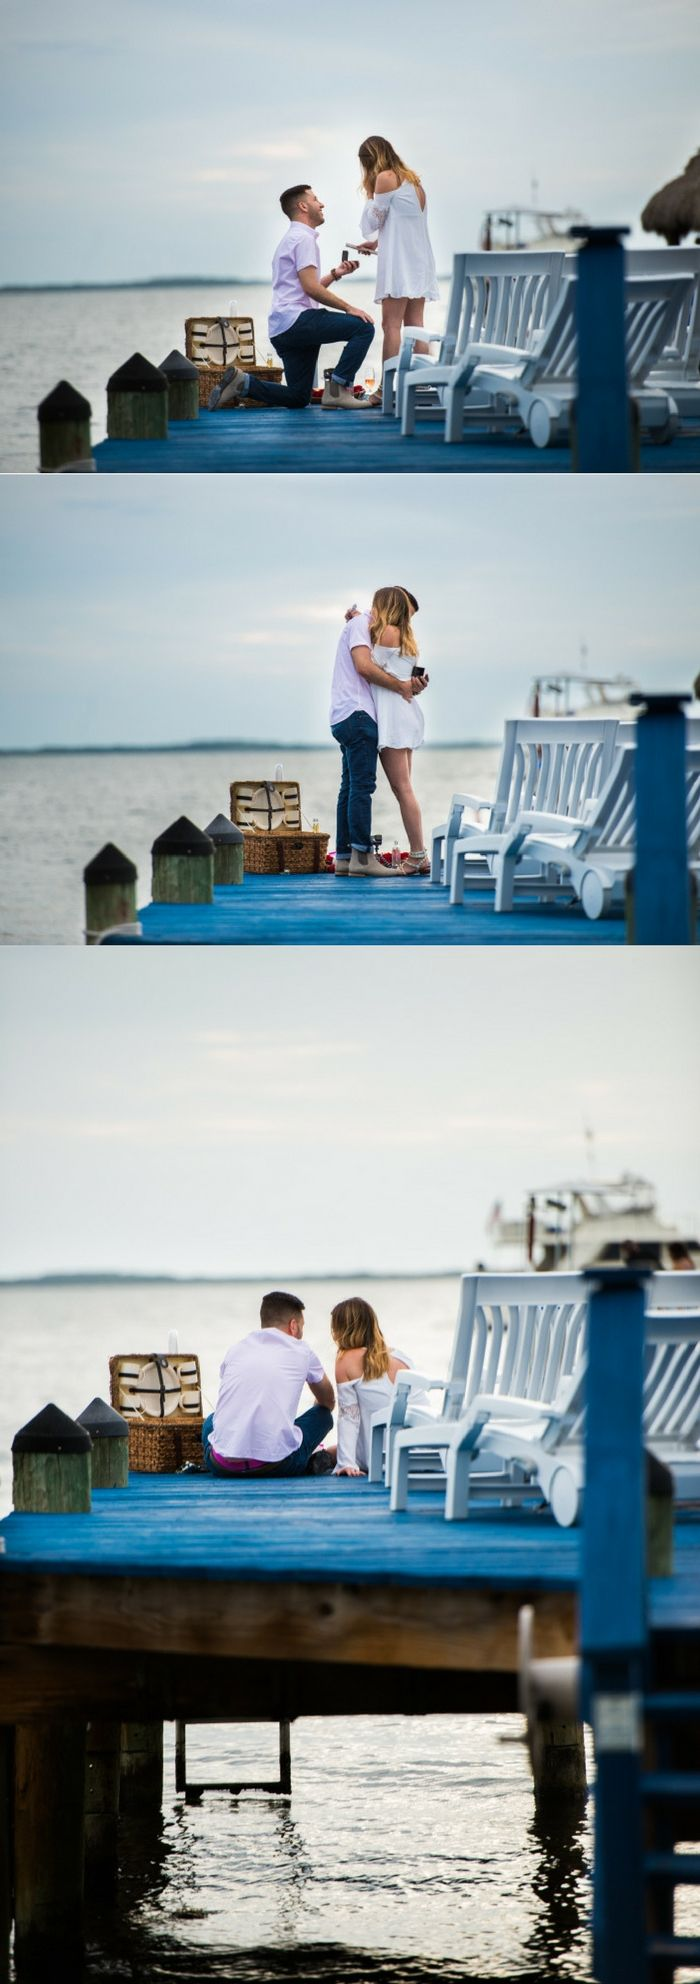 They were having a picnic on the dock, and it turned into the most beautiful marriage proposal.